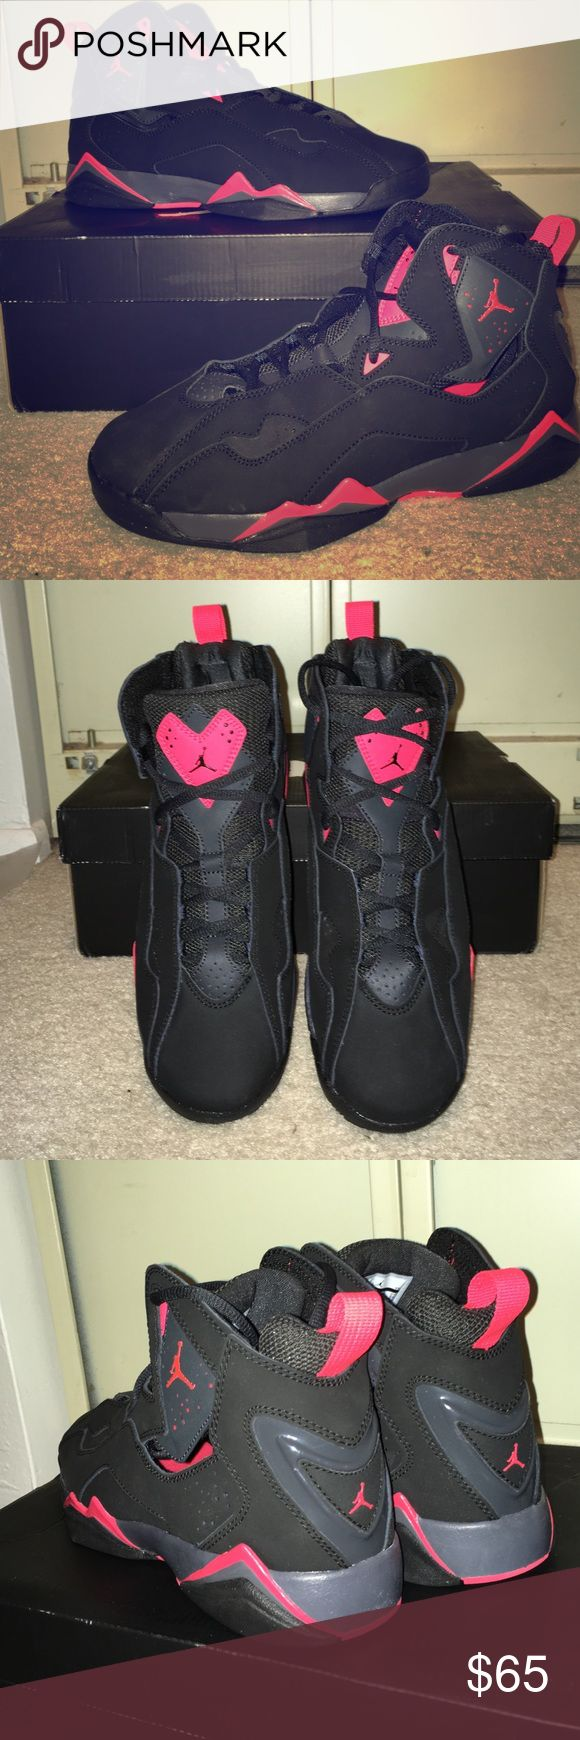 Jordan True Flight BG BRAND NEW JORDANS TRUE FLIGHT. I NEVER WORE THEM. These are kids boys size 7 which it would be size 9 in women's. The color is black and like a coral color Jordan Shoes Sneakers